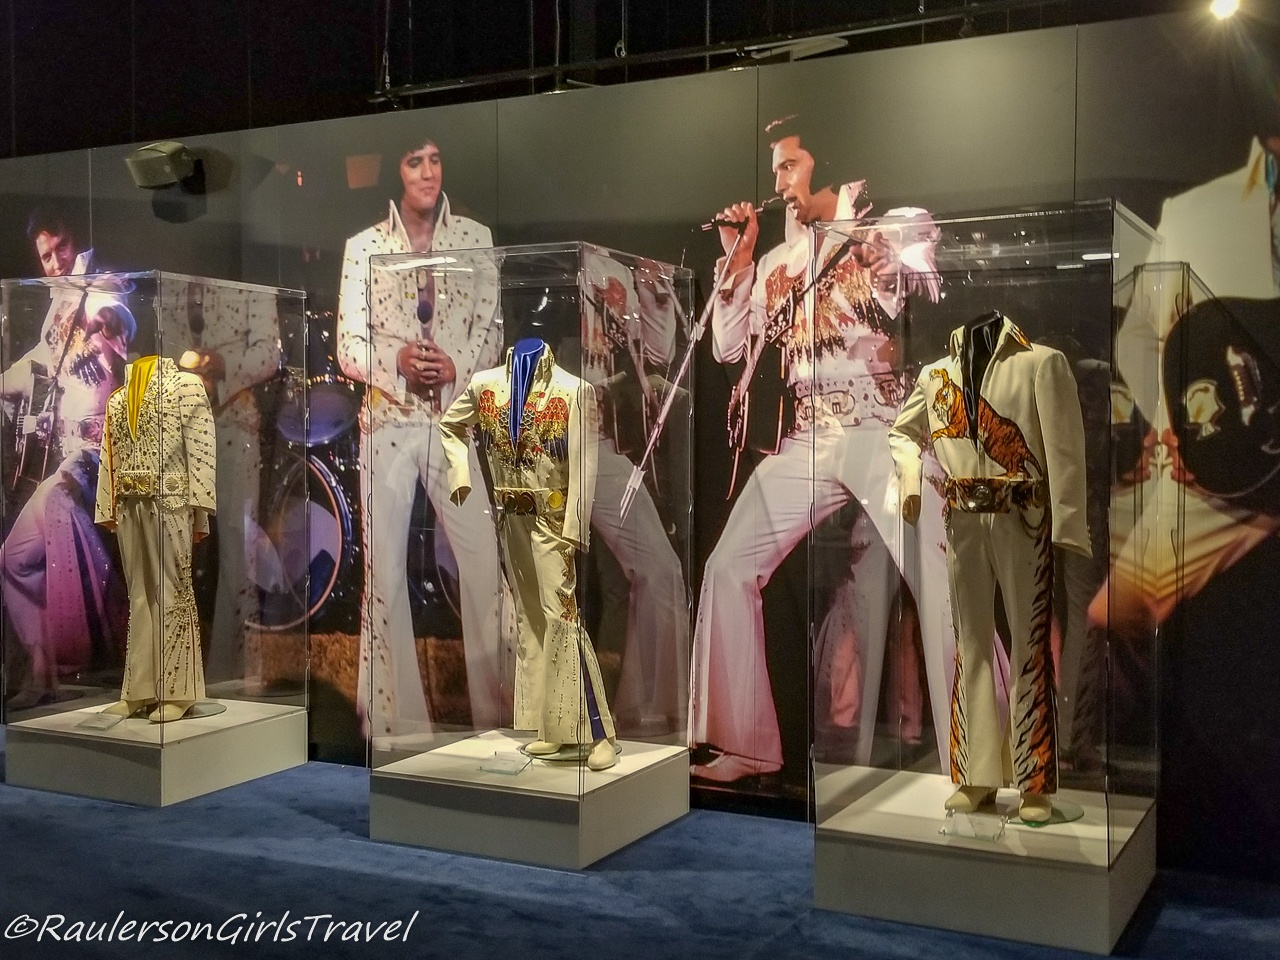 Elvis Presley's Costumes for Concerts